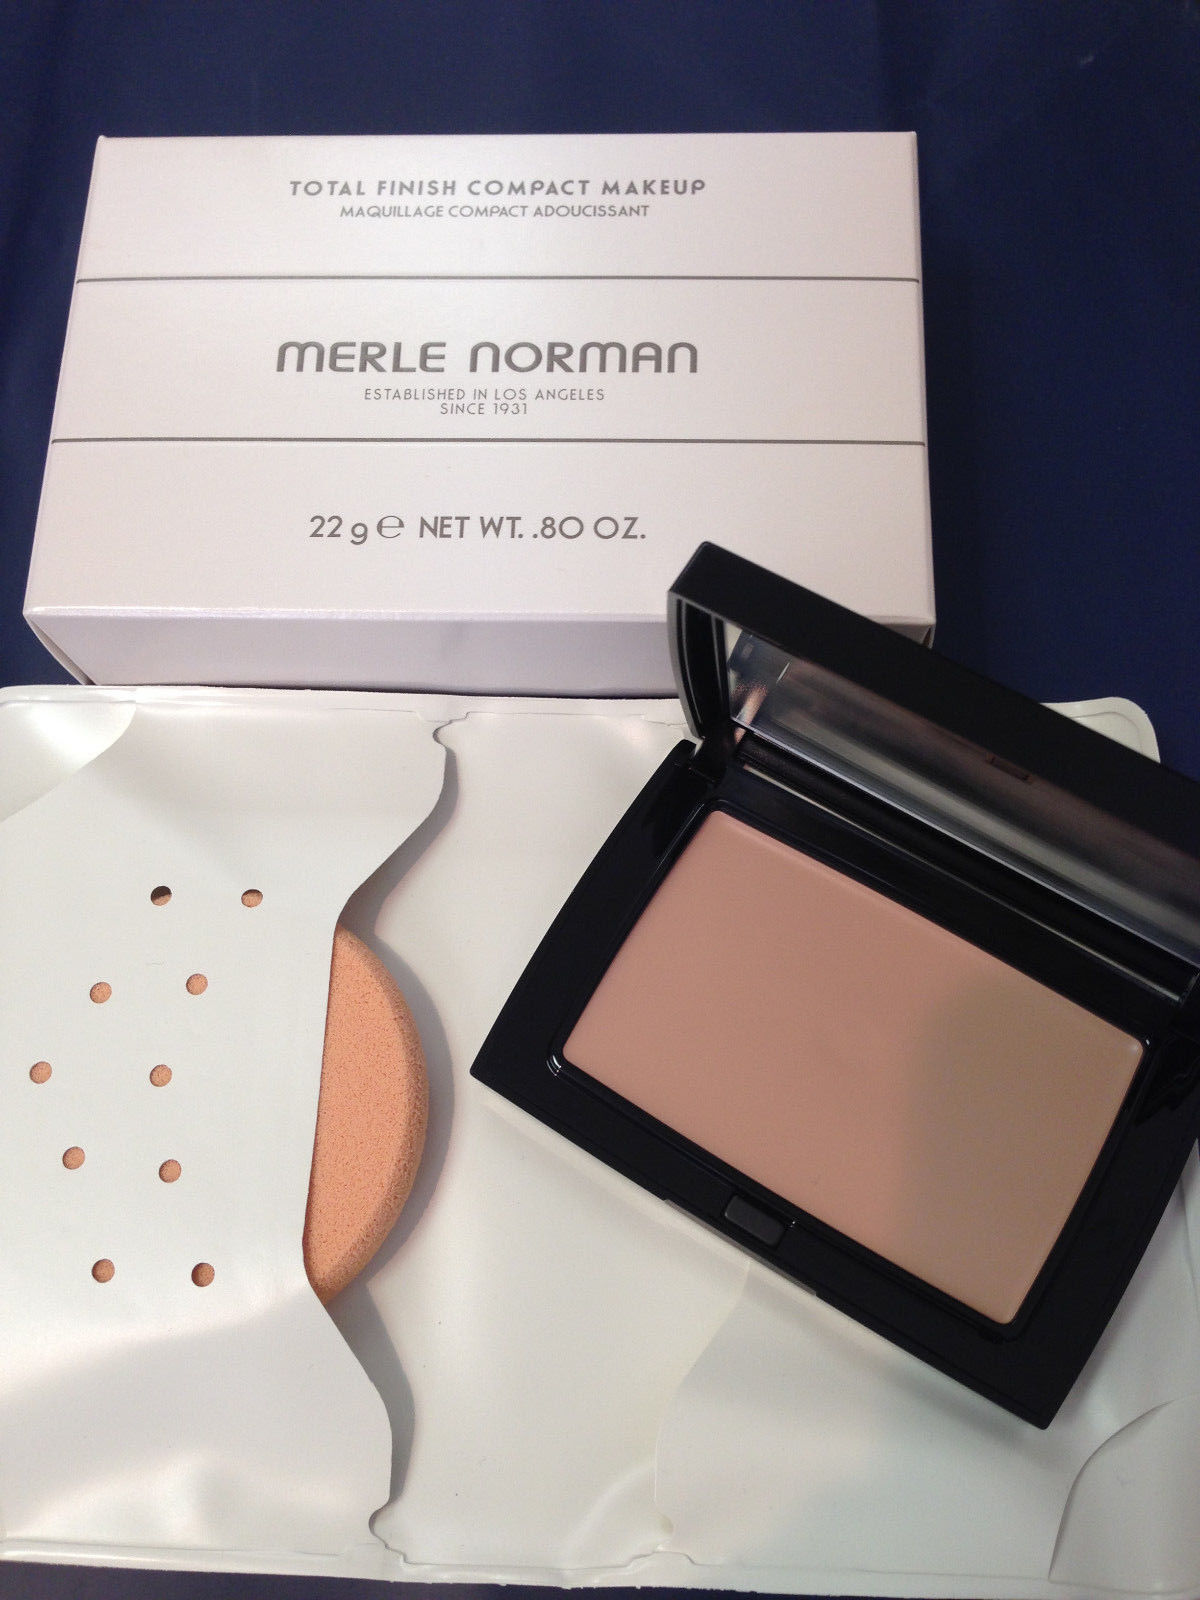 brand new merle norman total f... Image 1